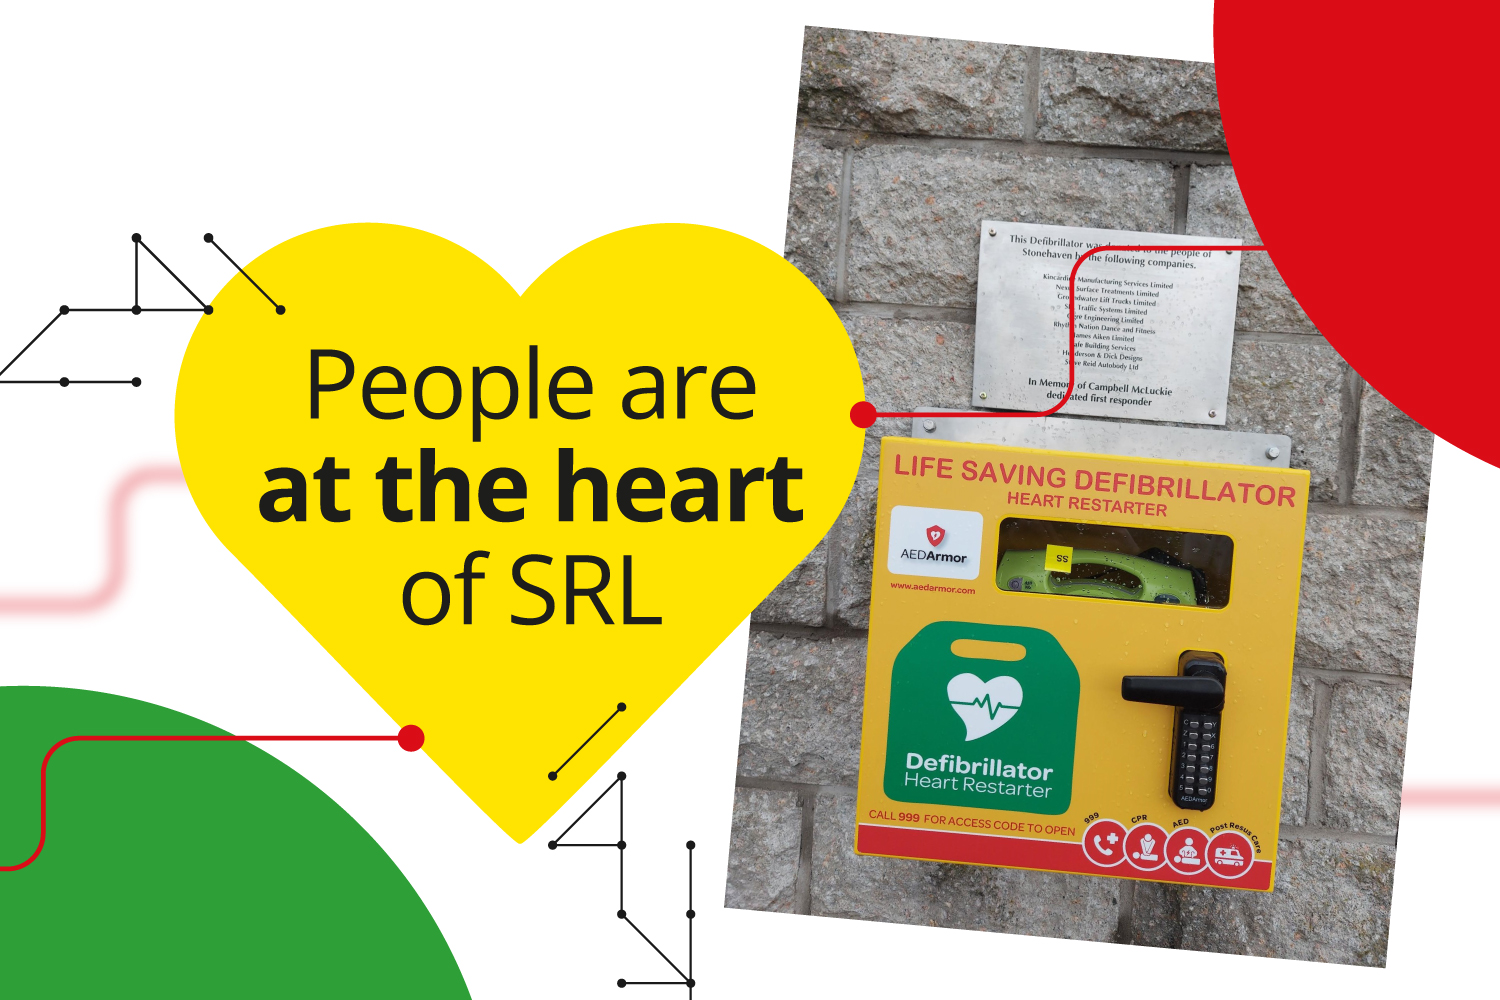 SRL joins local Aberdeen businesses to provide community defibrillator